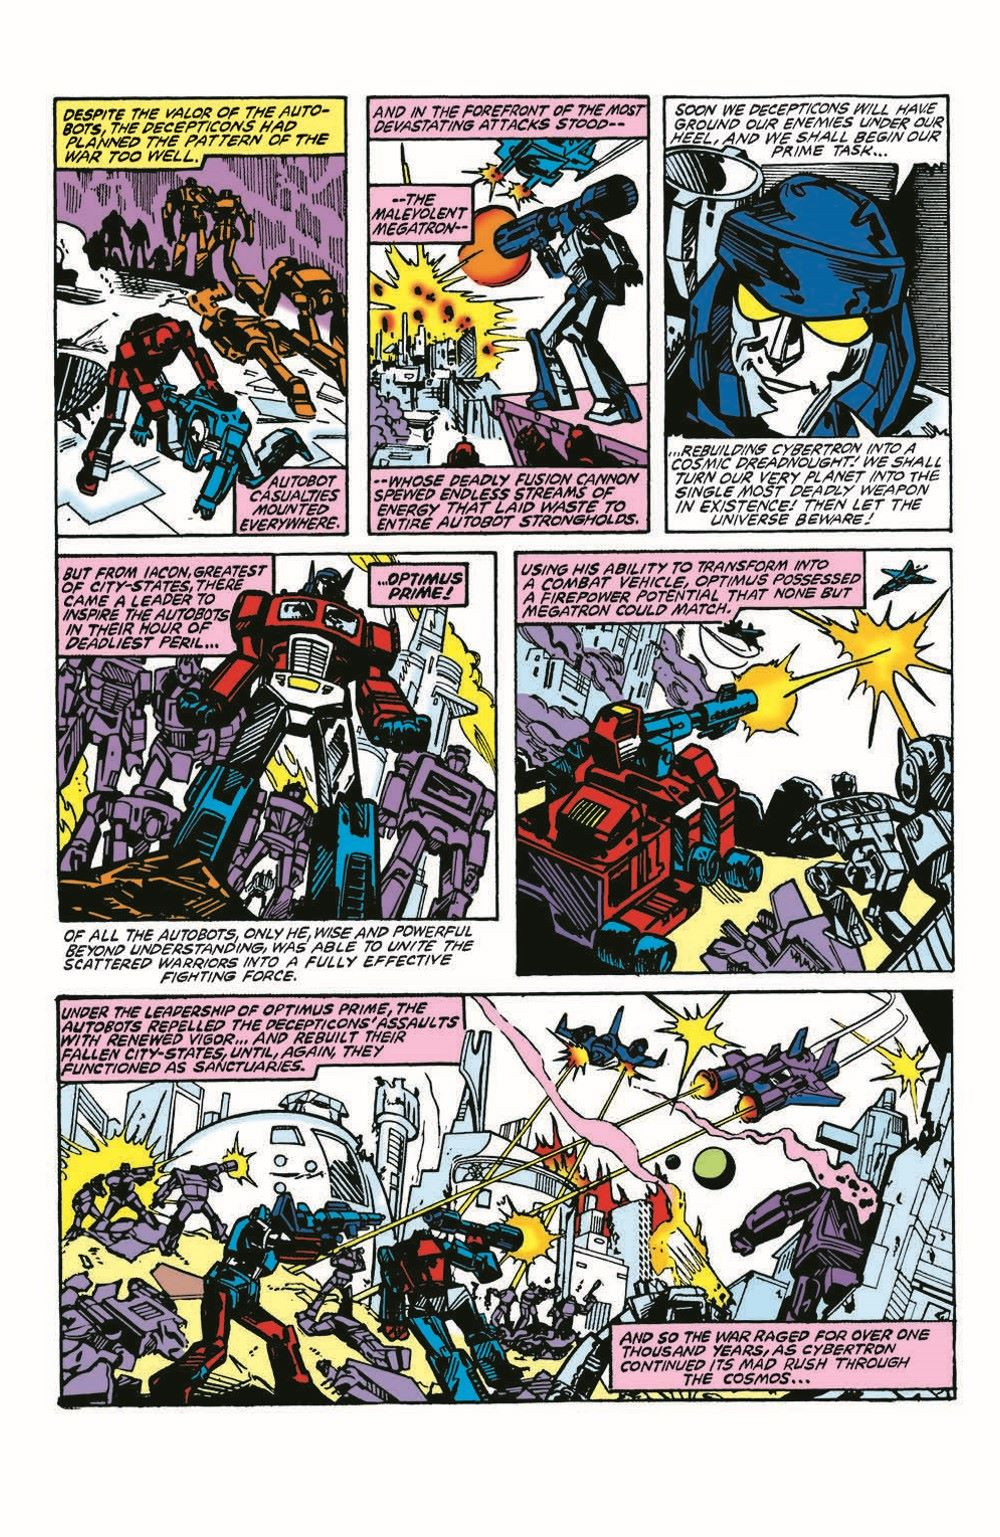 TF84-100PgGiant-pr-6 ComicList Previews: TRANSFORMERS '84 LEGENDS AND RUMORS 100-PAGE GIANT #1